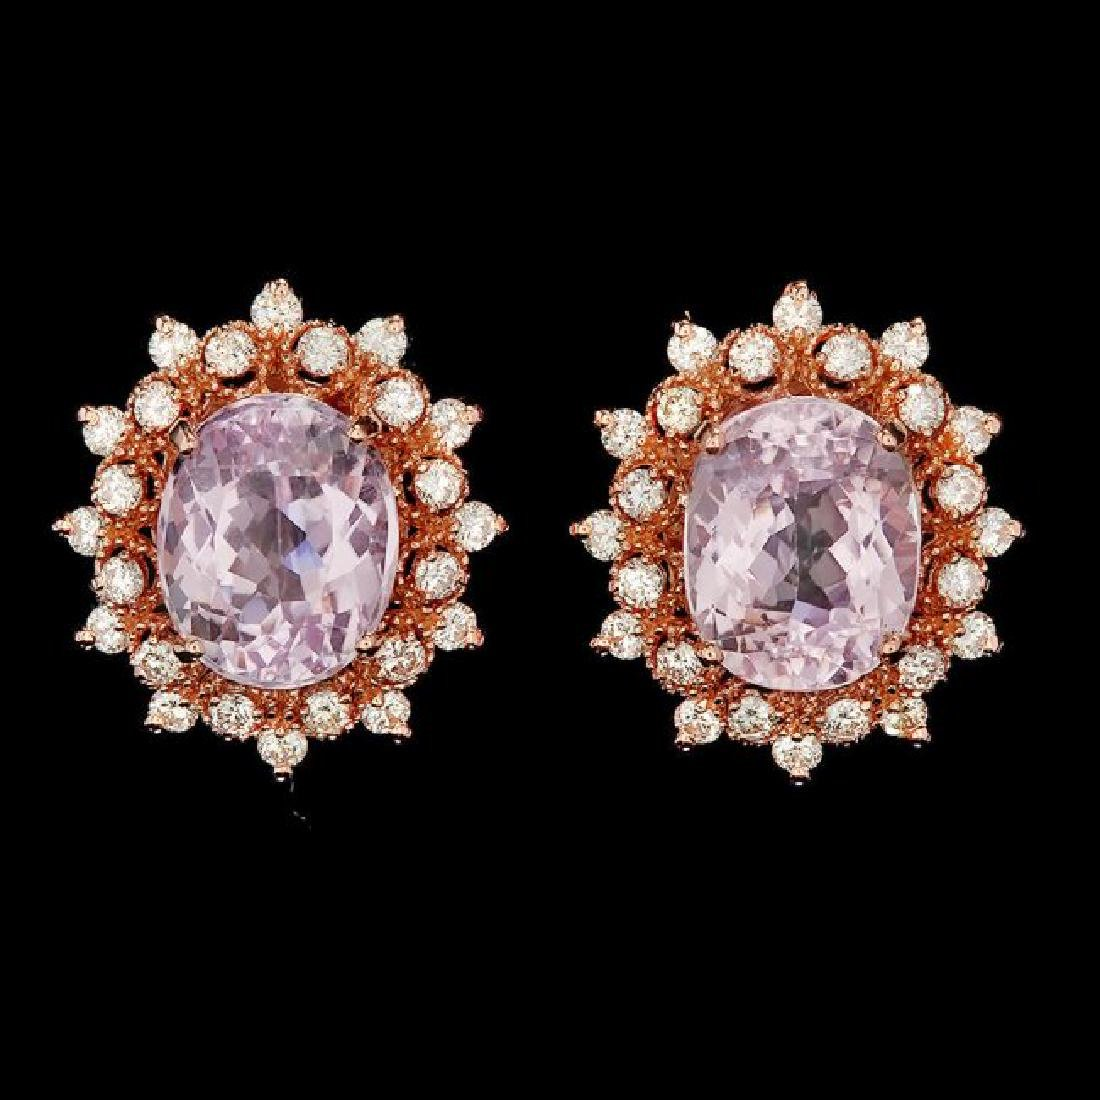 14k Rose 10.00ct Kunzite 1.35ct Diamond Earrings